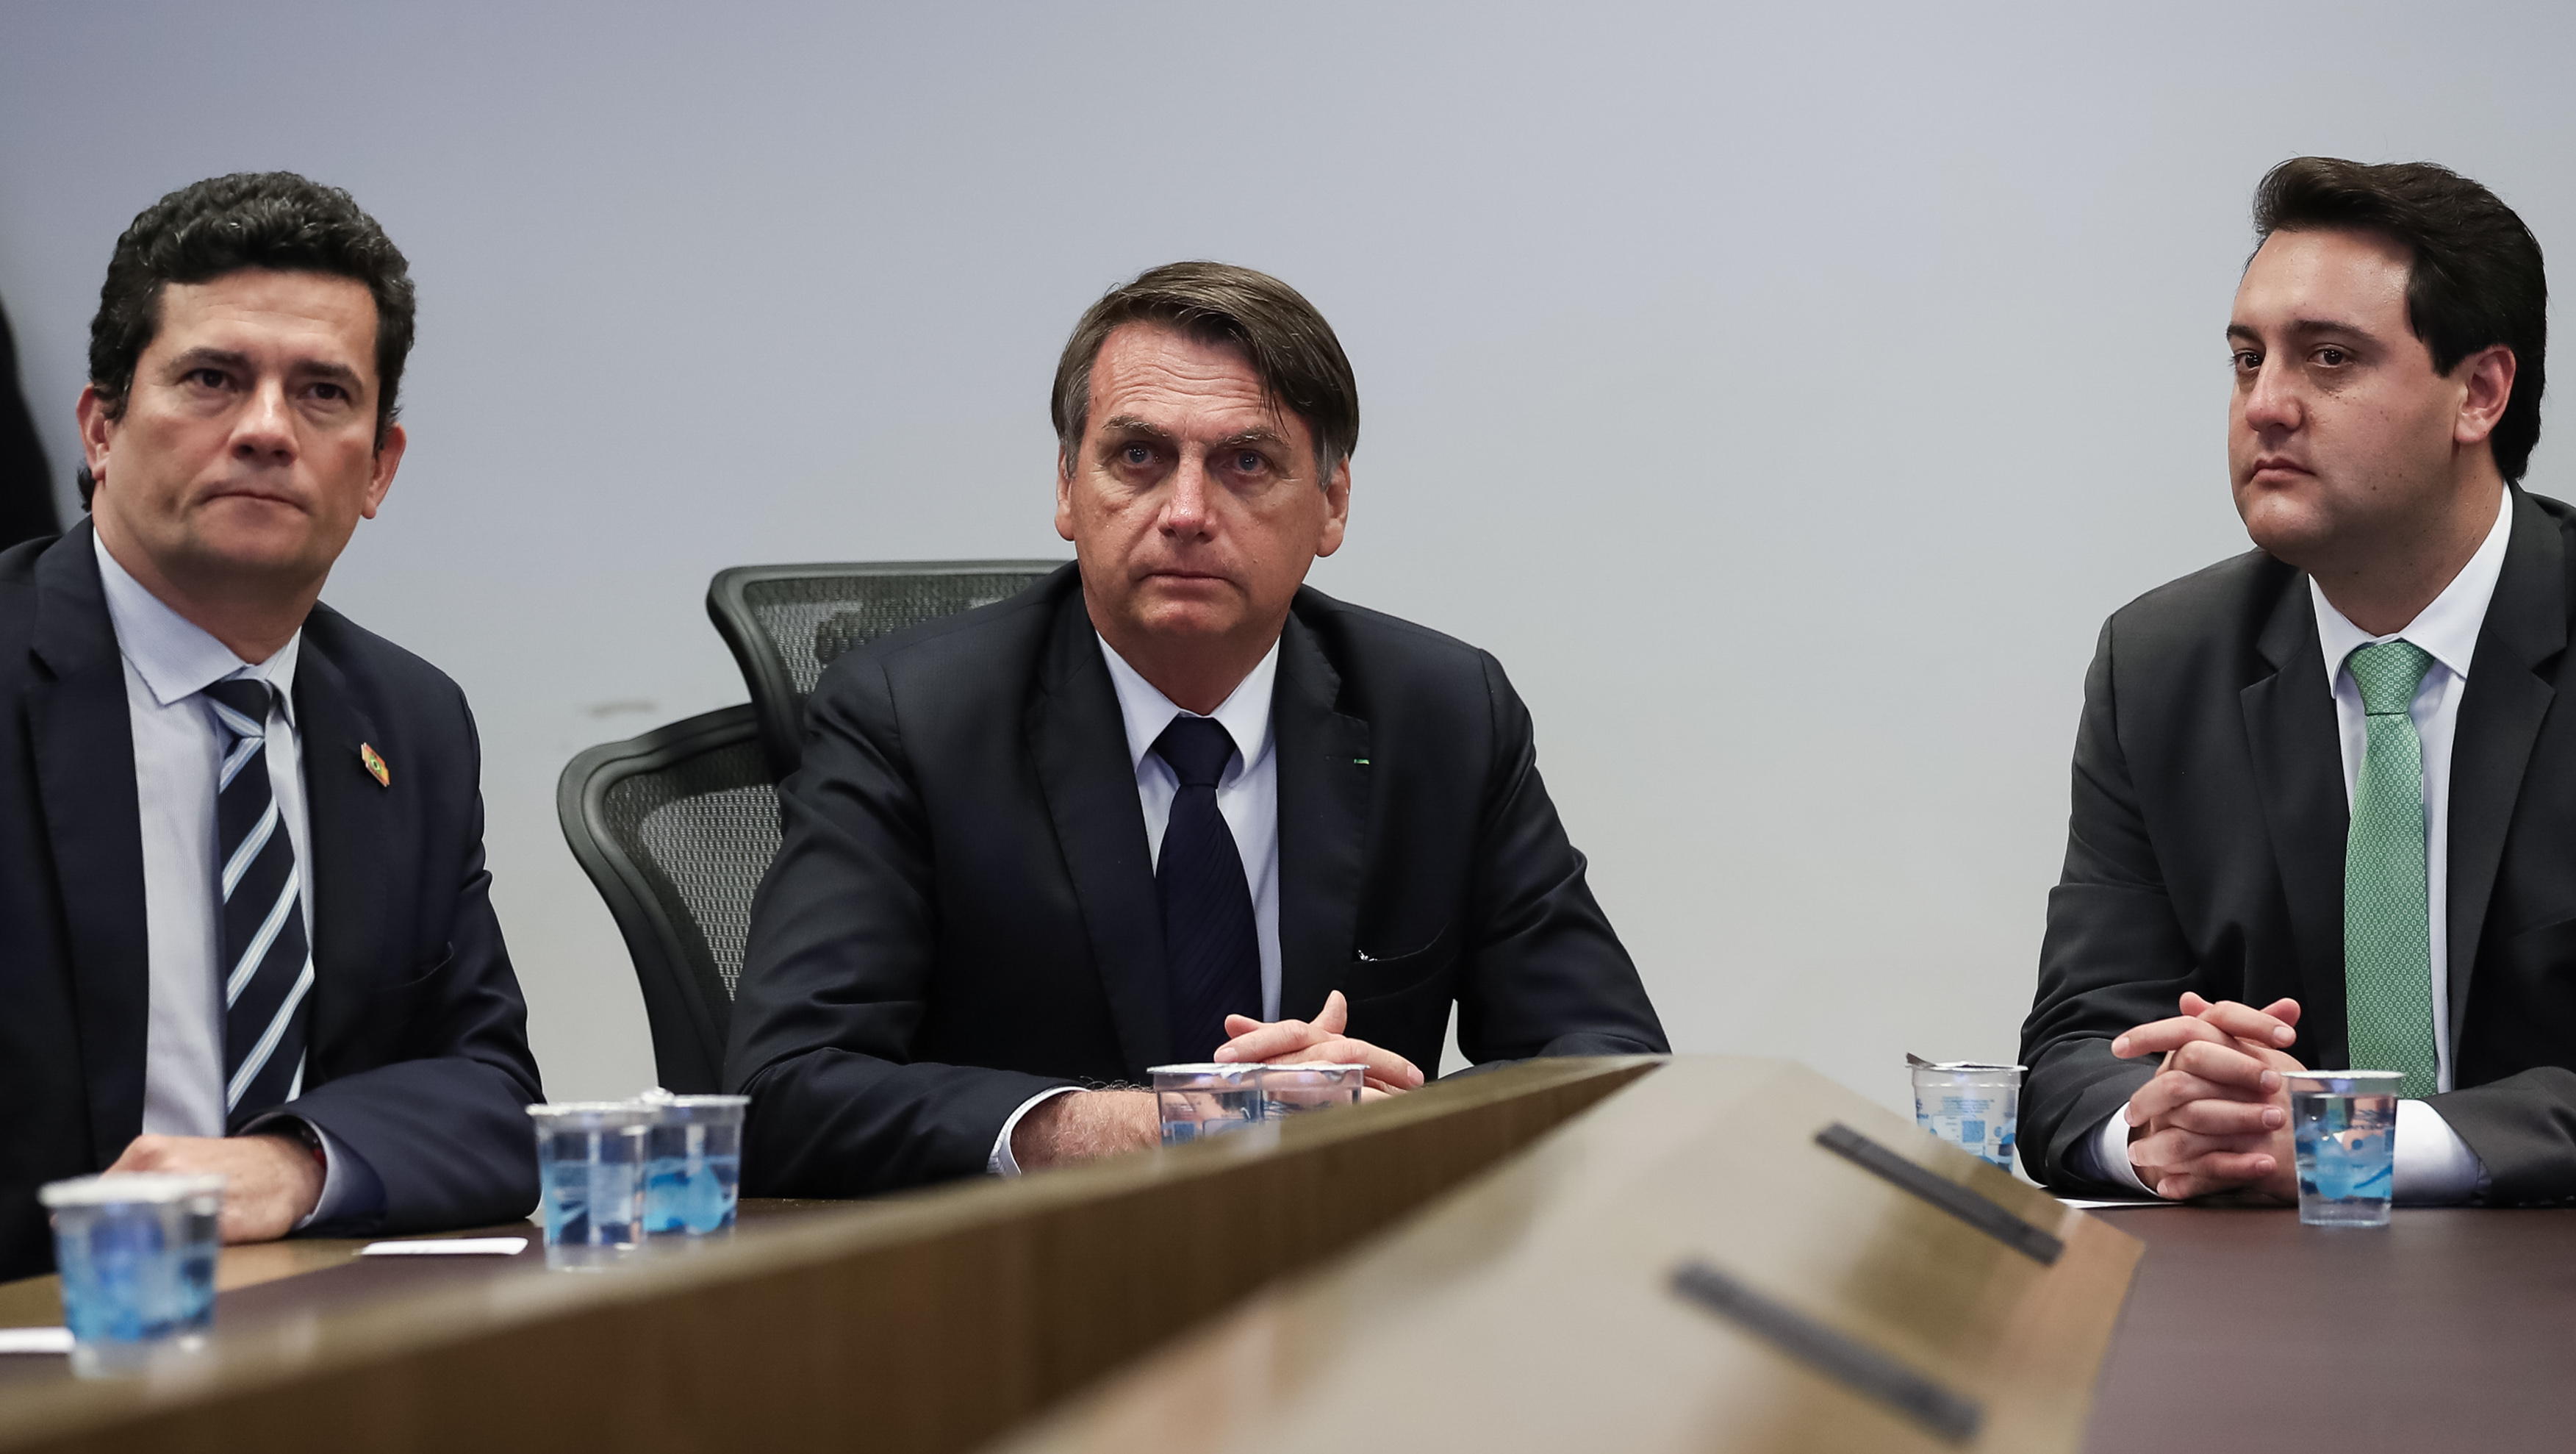 Moro, Bolsonaro, and Paraná governor Ratinho Júnior seated during a visit to the Integrated Center of Intelligence and Public Security of the Southern Region in May 2019.